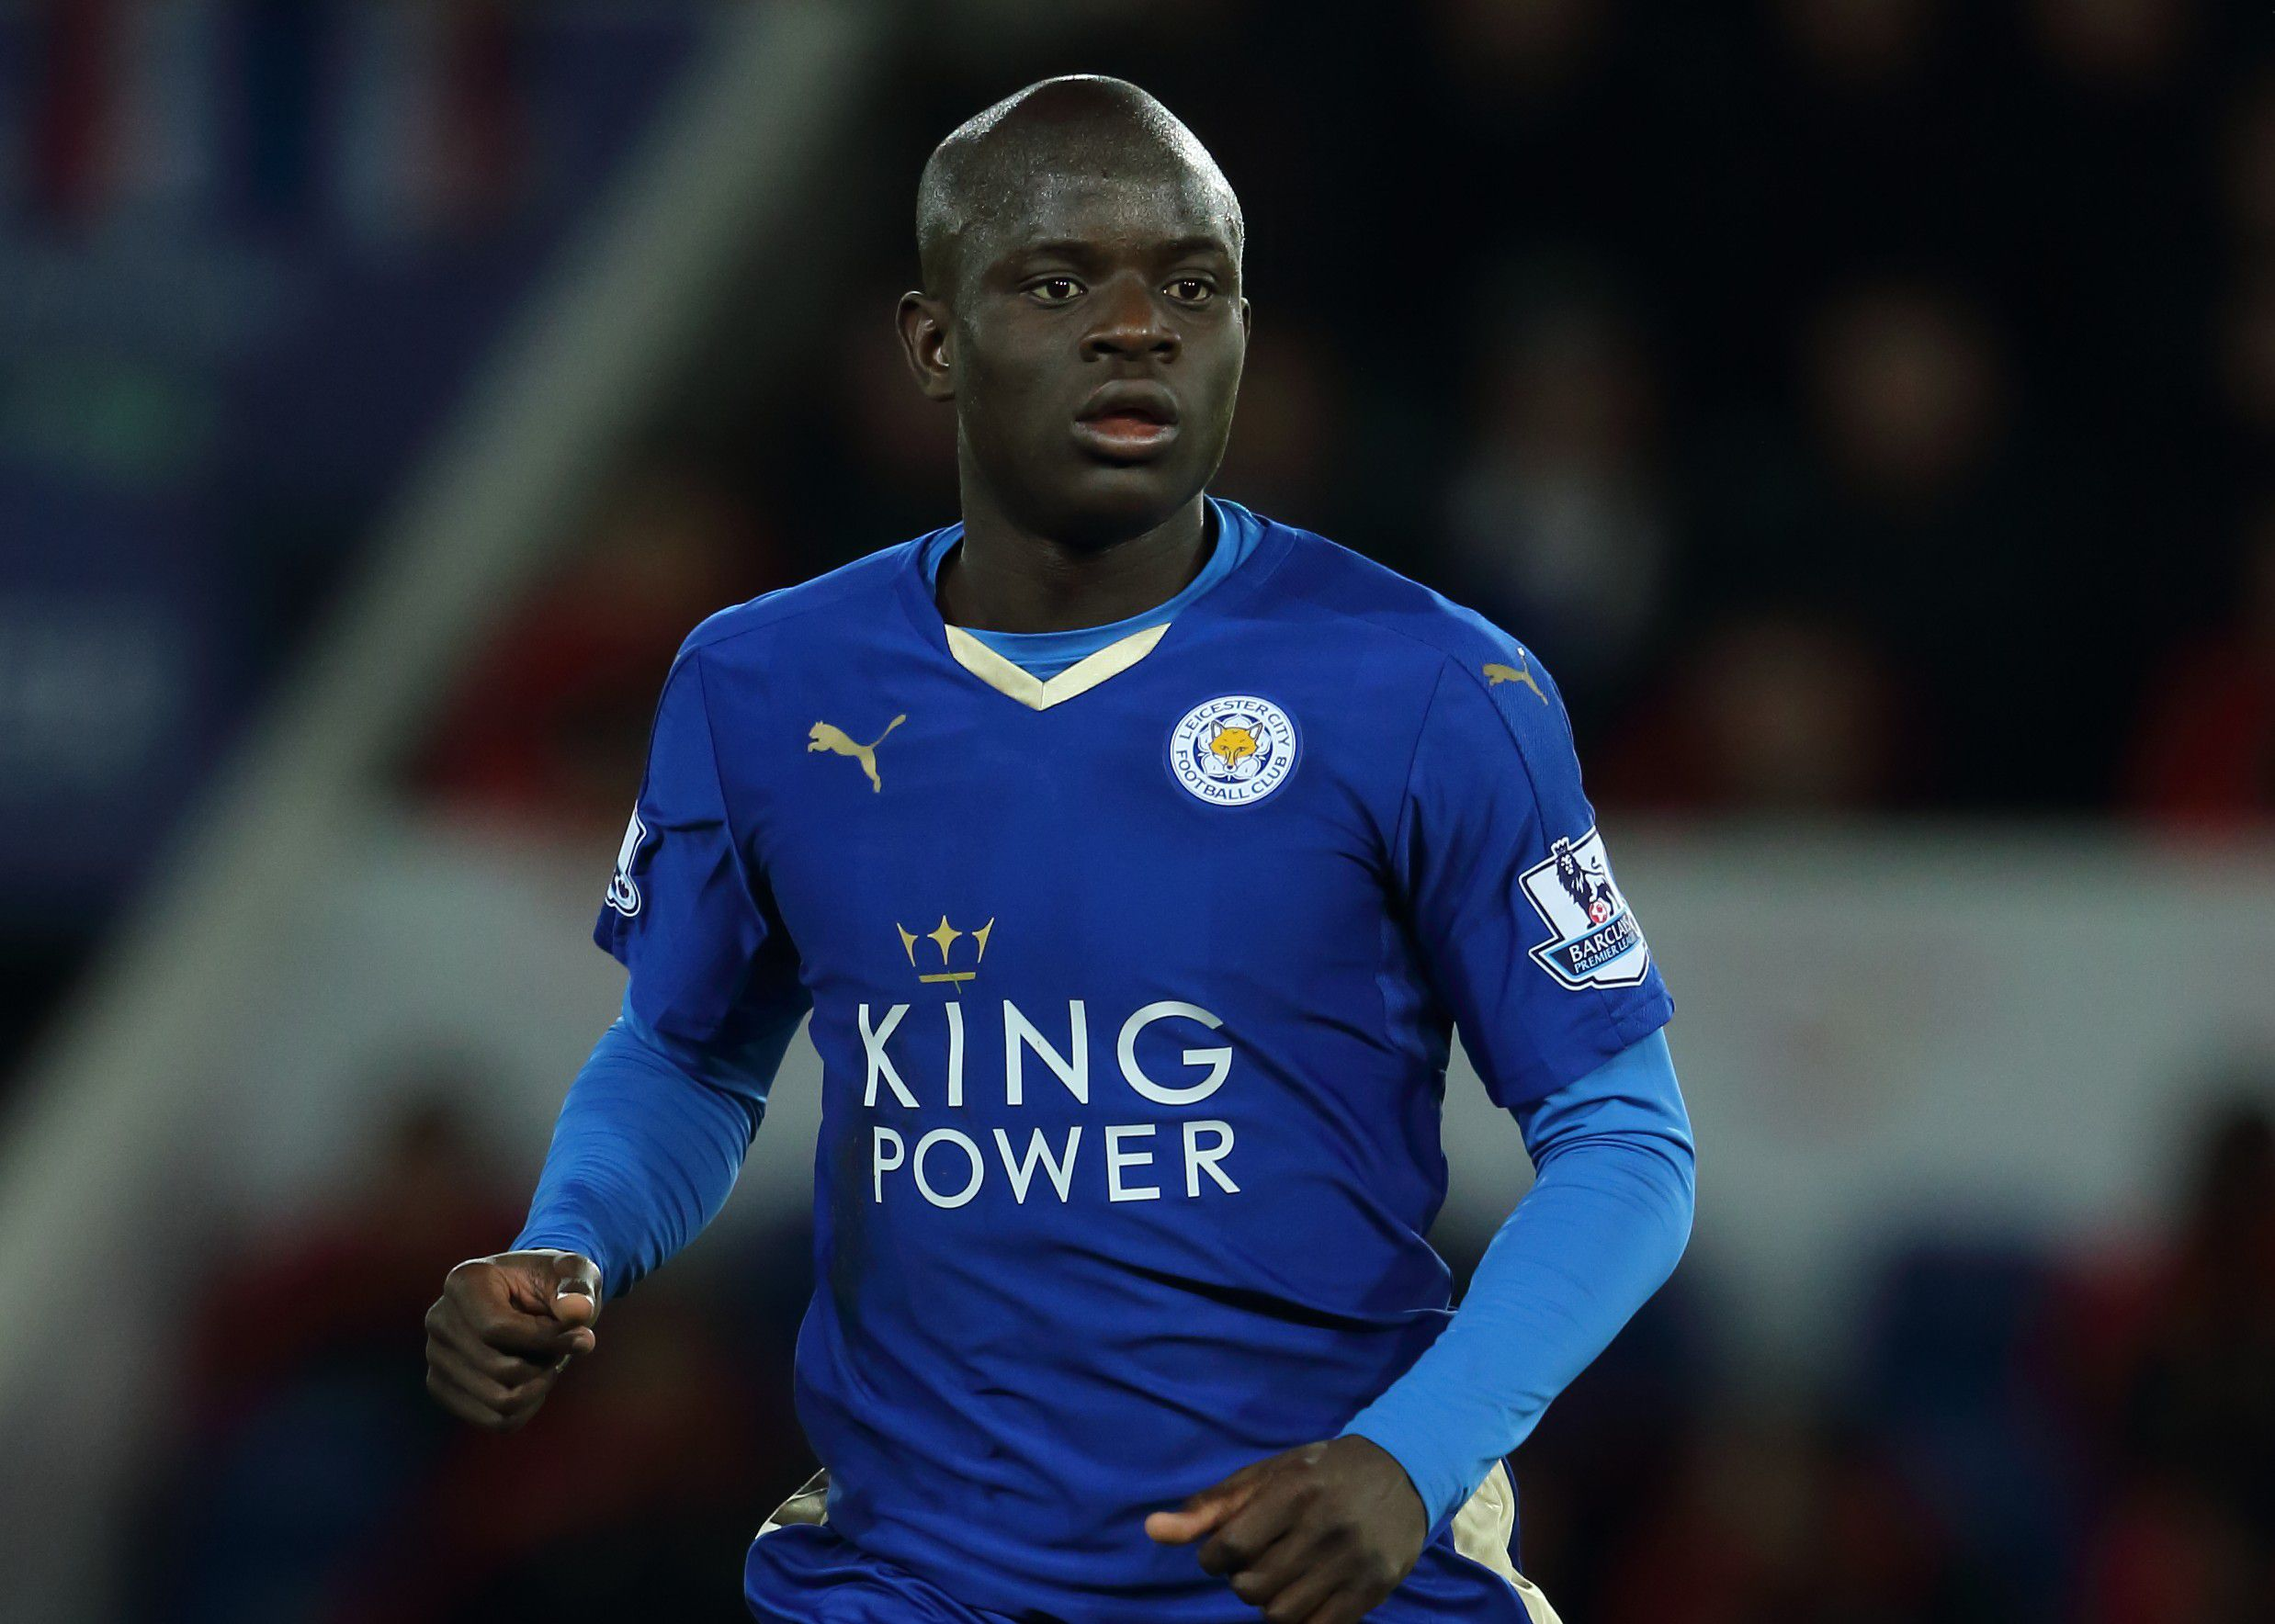 Arsenal ready to spend £20million on N'Golo Kante transfer